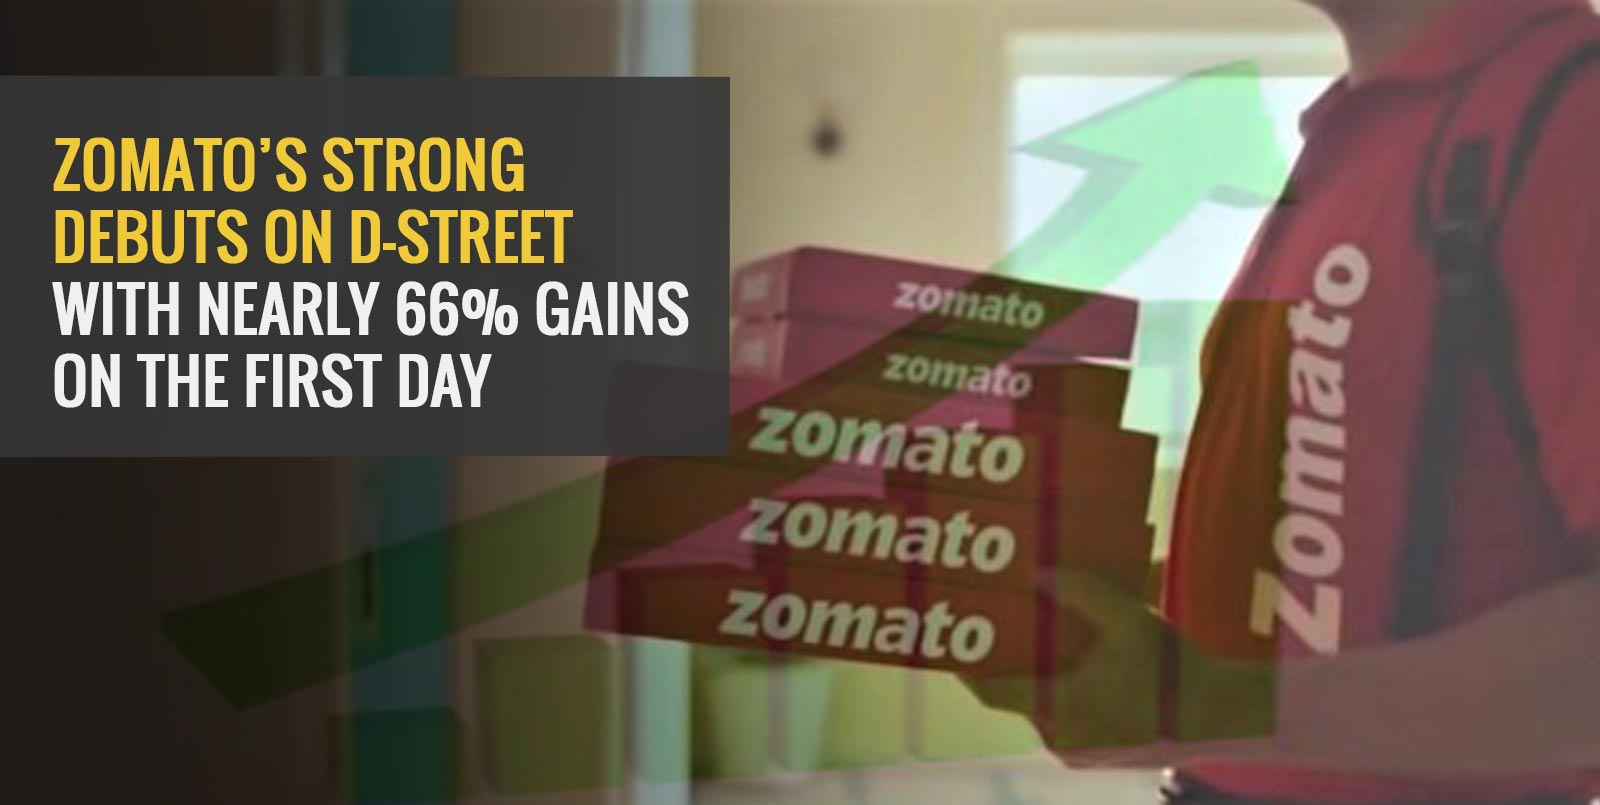 Zomato's Strong Debuts on D-Street with Nearly 66% Gains on the First Day